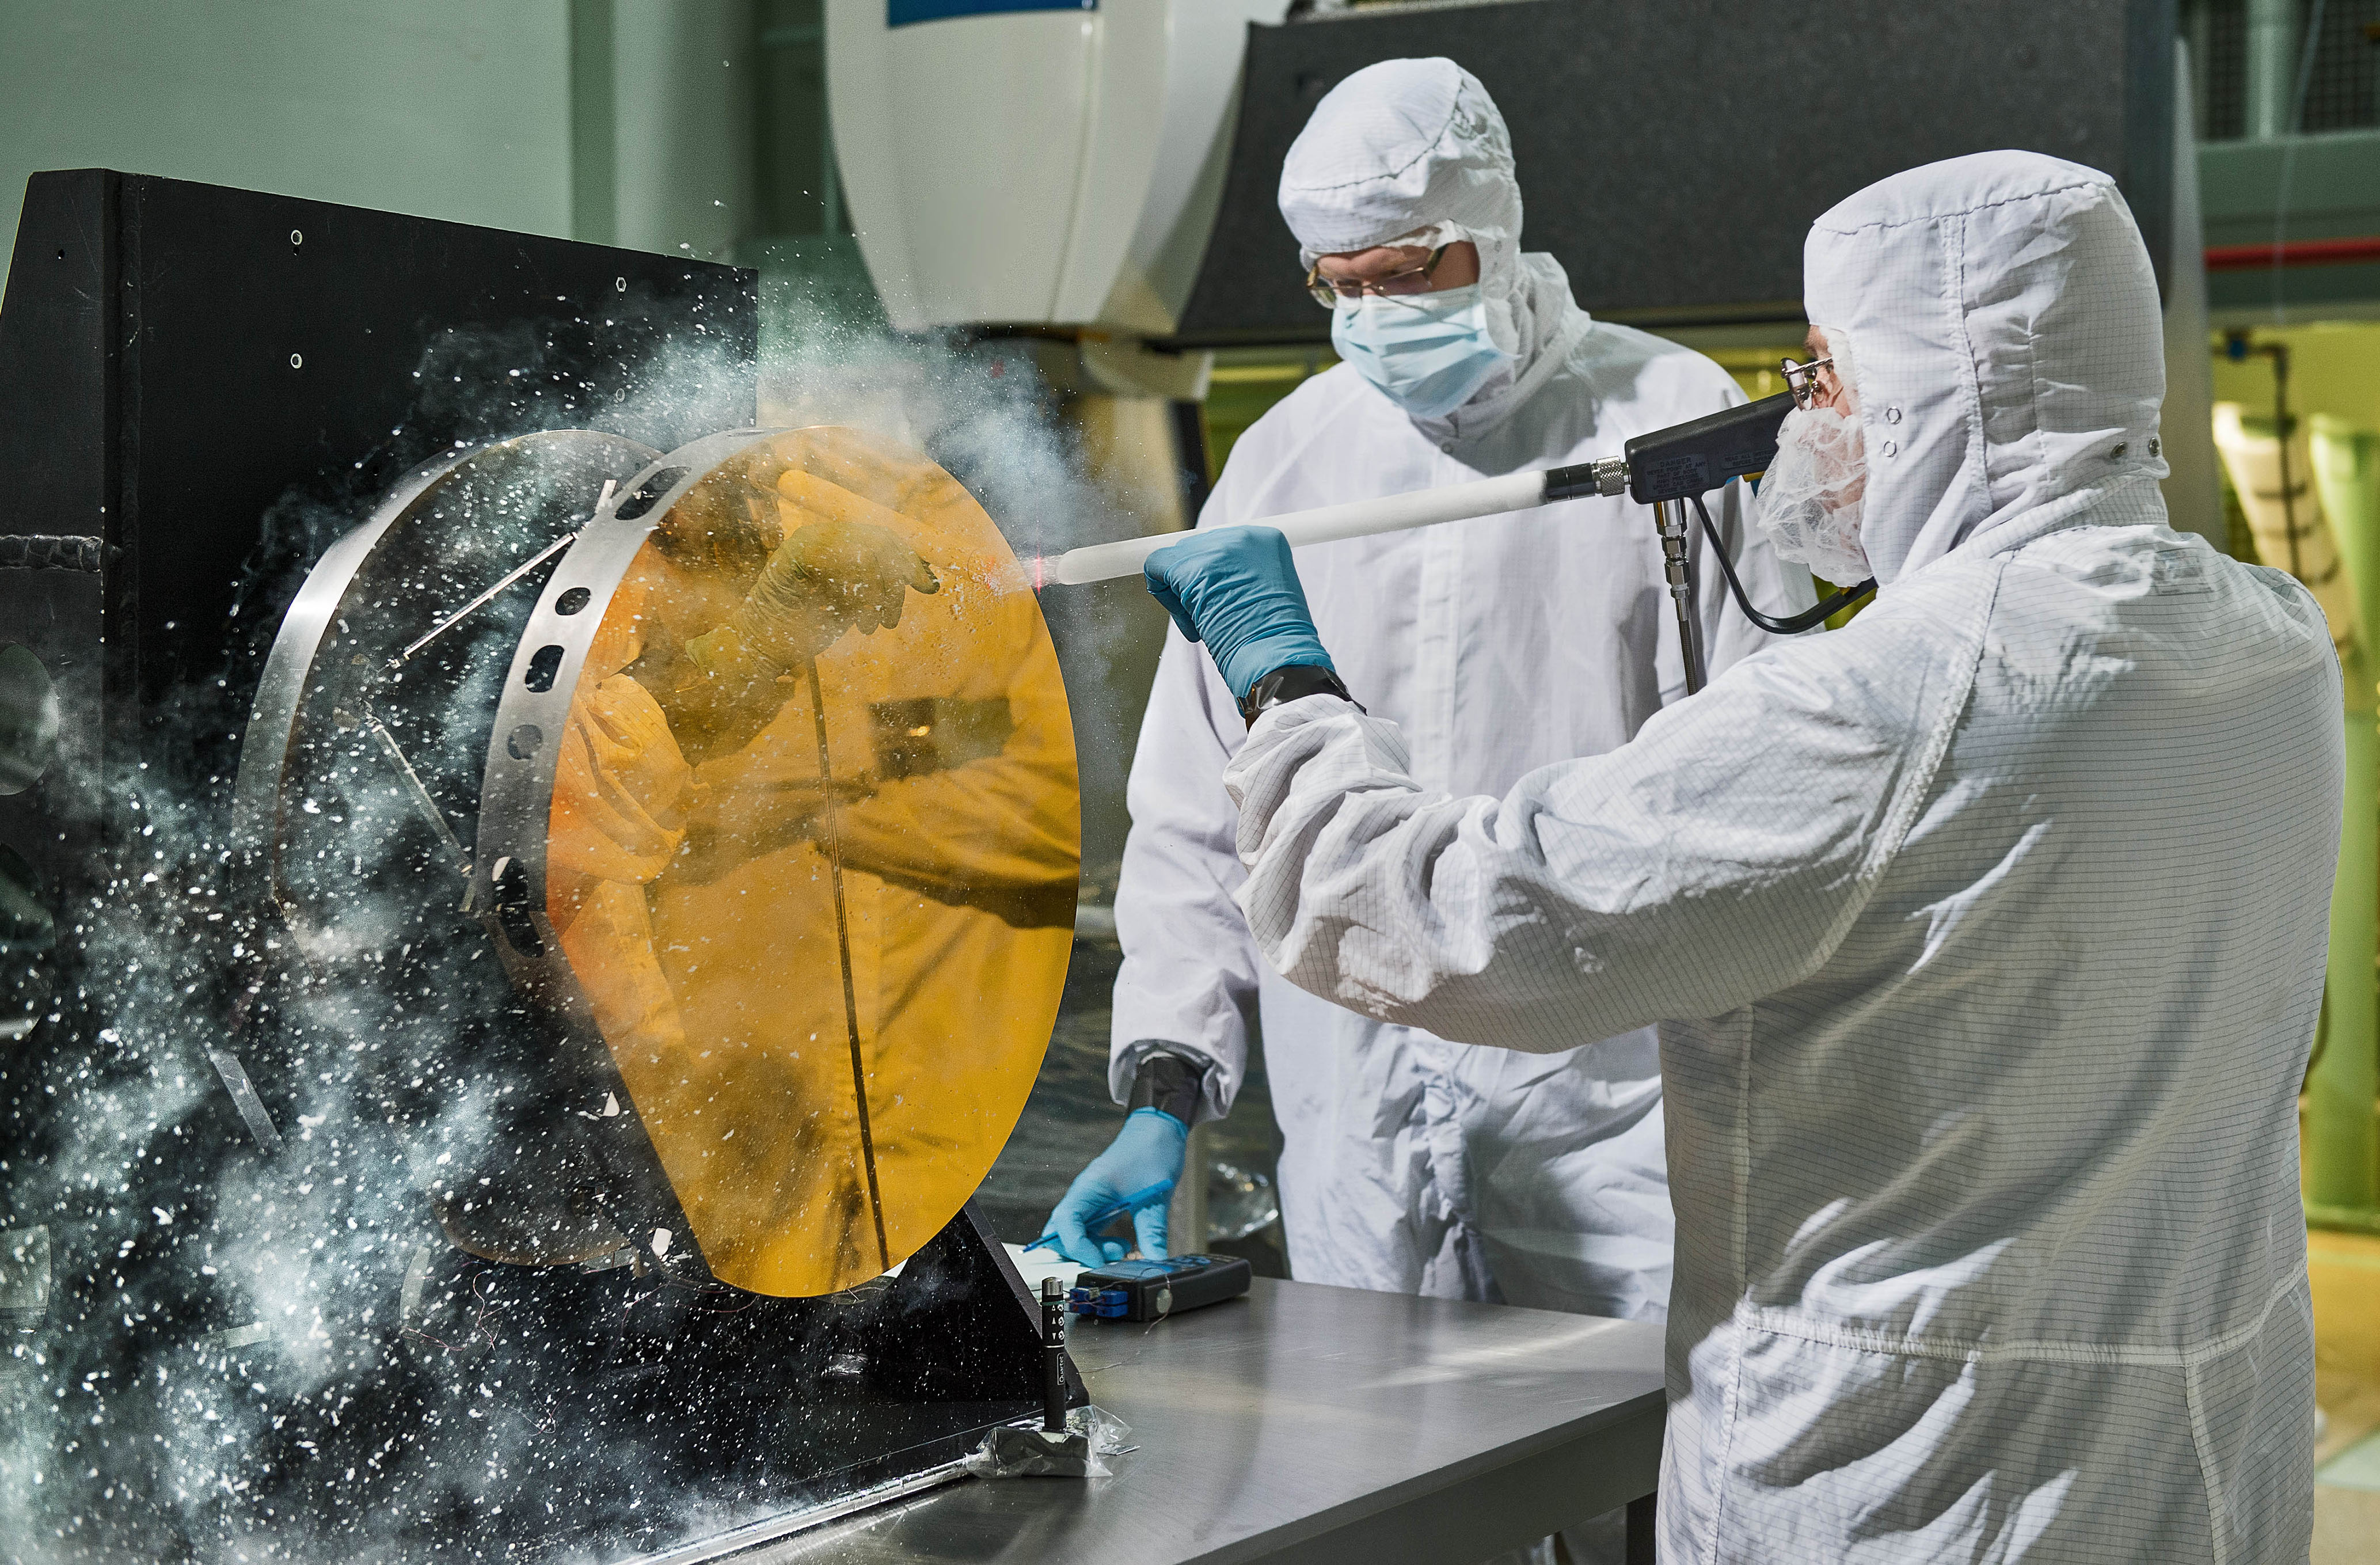 Two Exelis Inc. engineers are practicing  snow cleaning'  on a test telescope mirror for the James Webb Space Telescope at NASA's Goddard Space Flight Center in Greenbelt, Maryland.